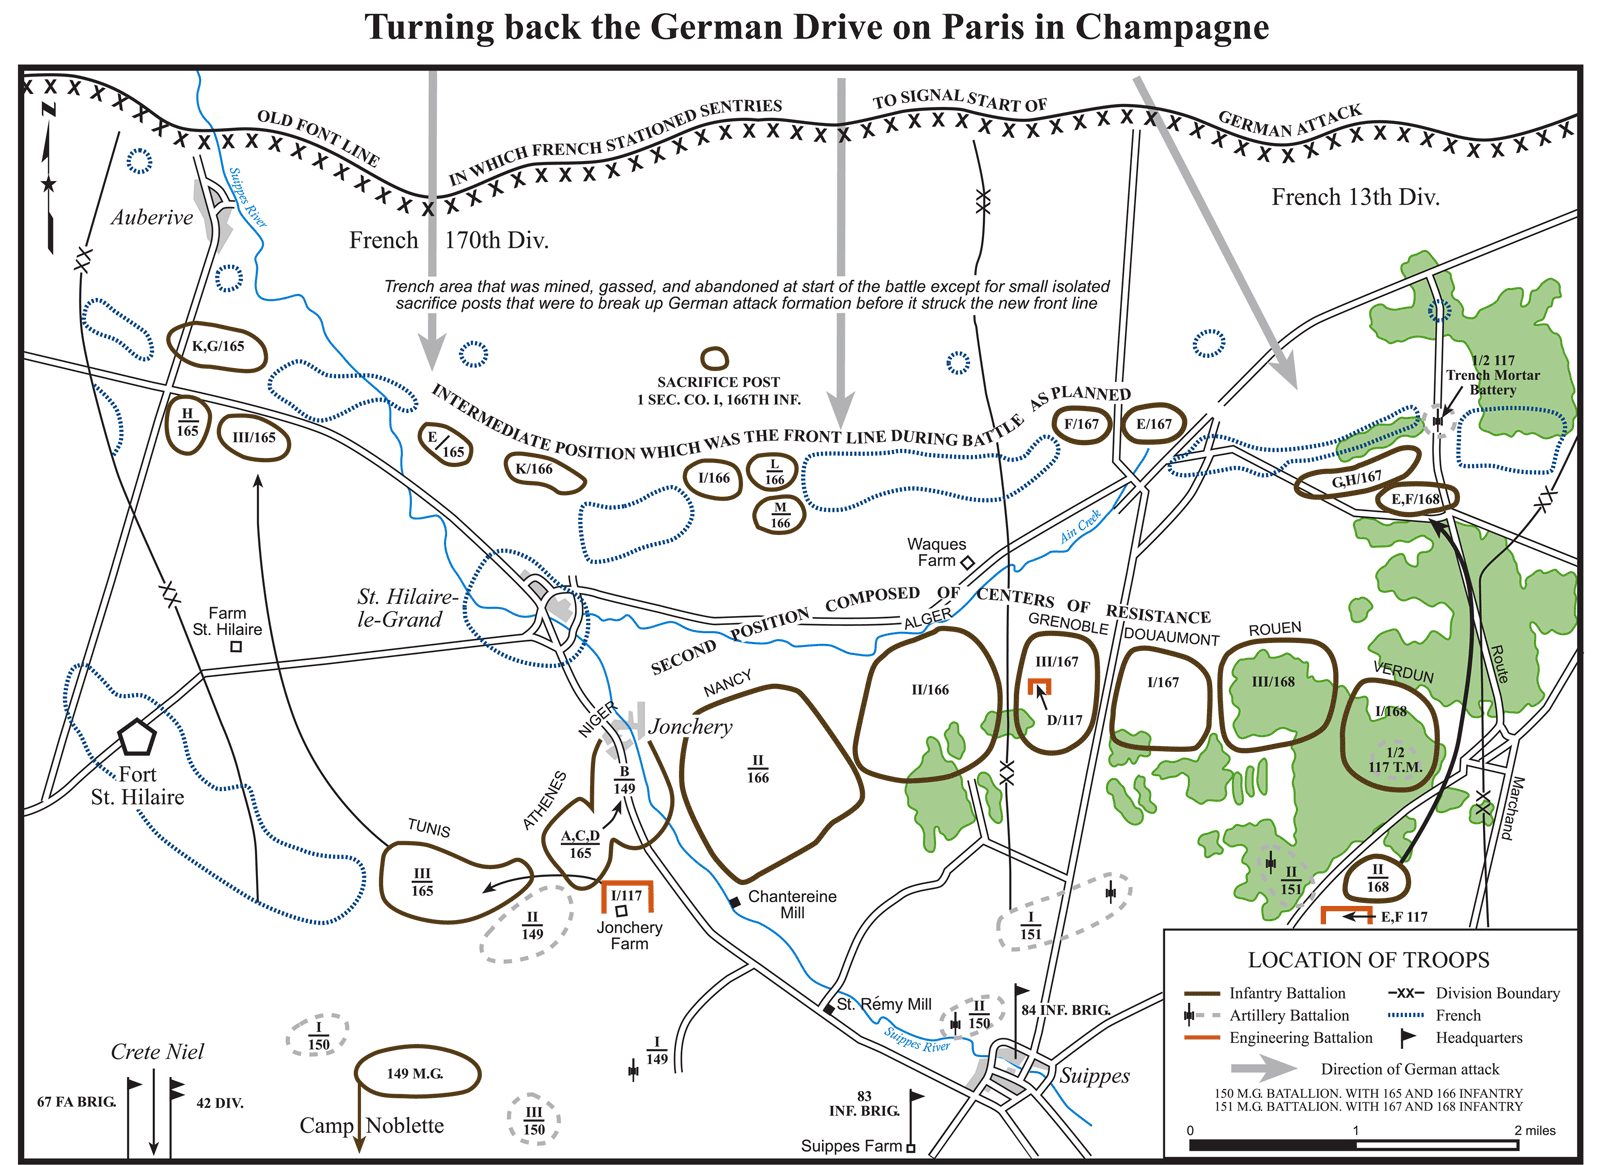 The Battle of Champagne